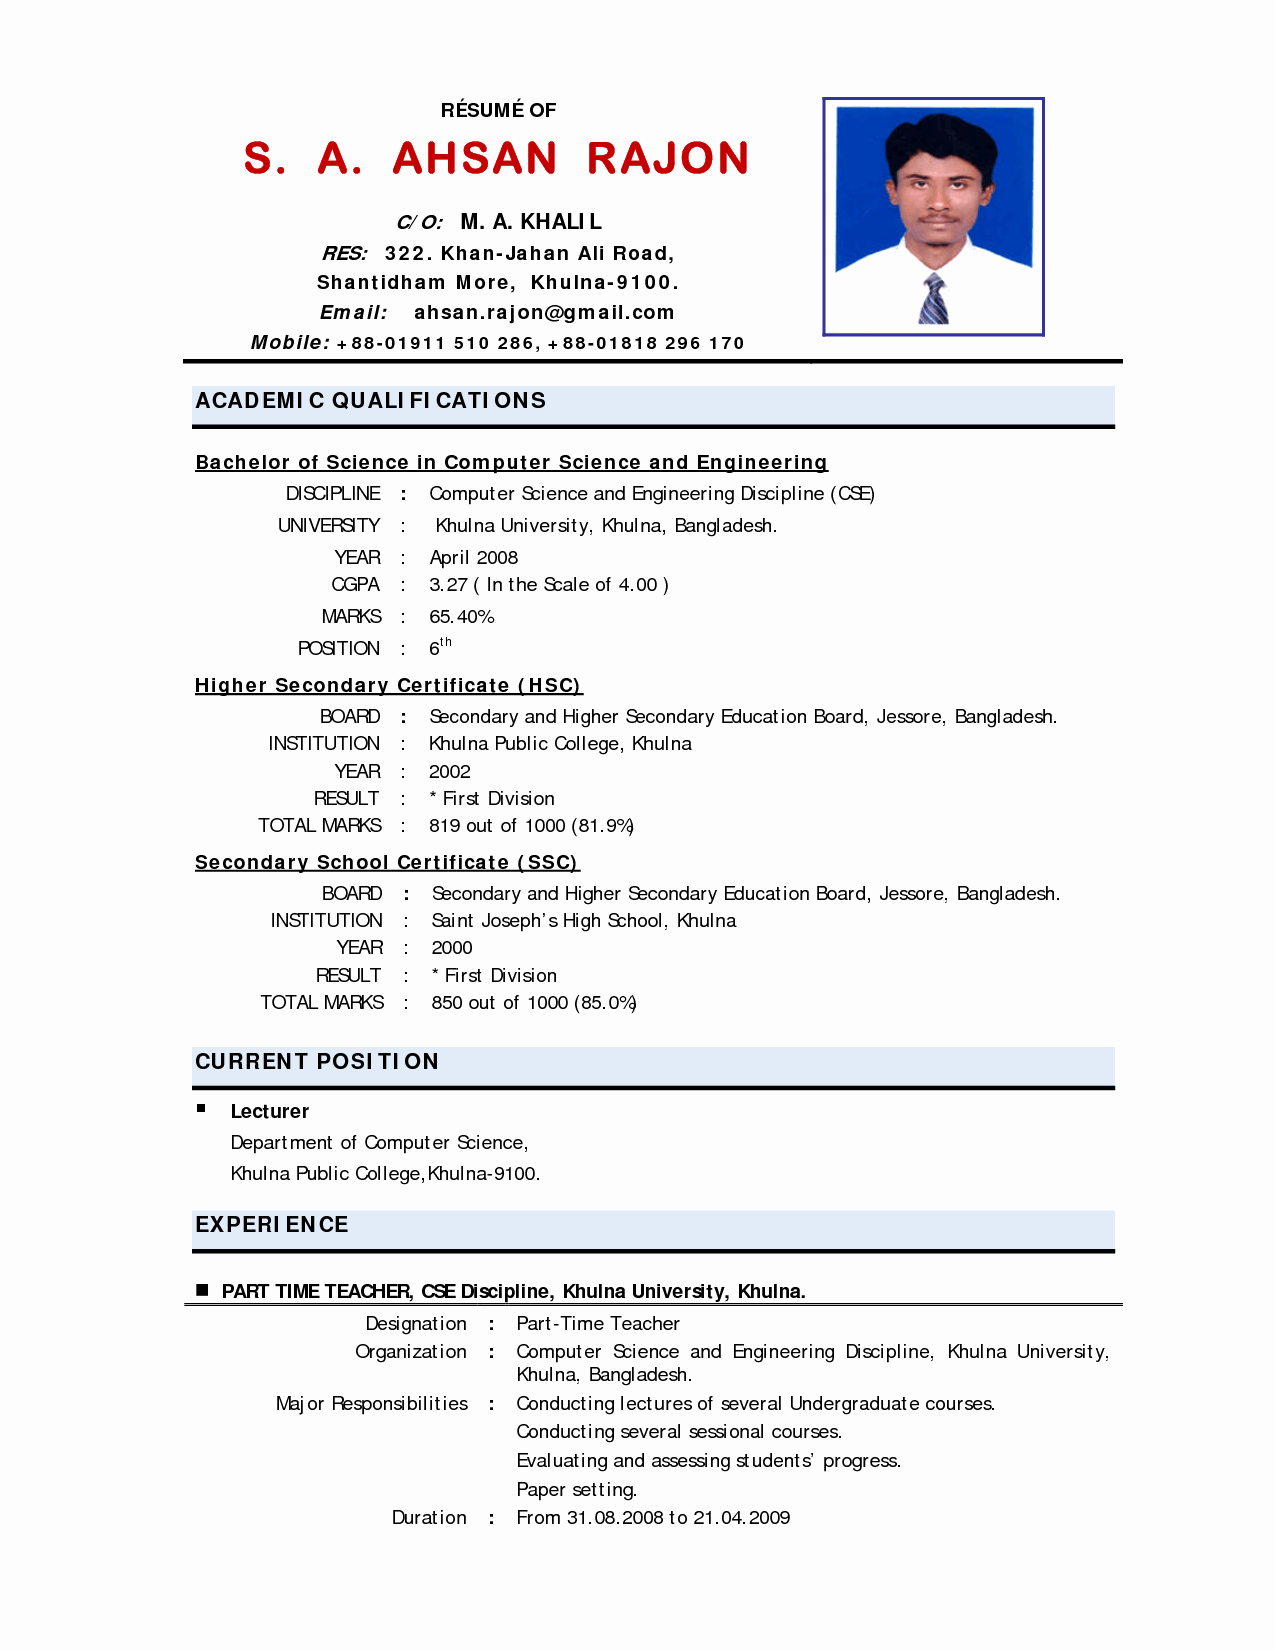 10 Example Of Applicant Resume for Teacher